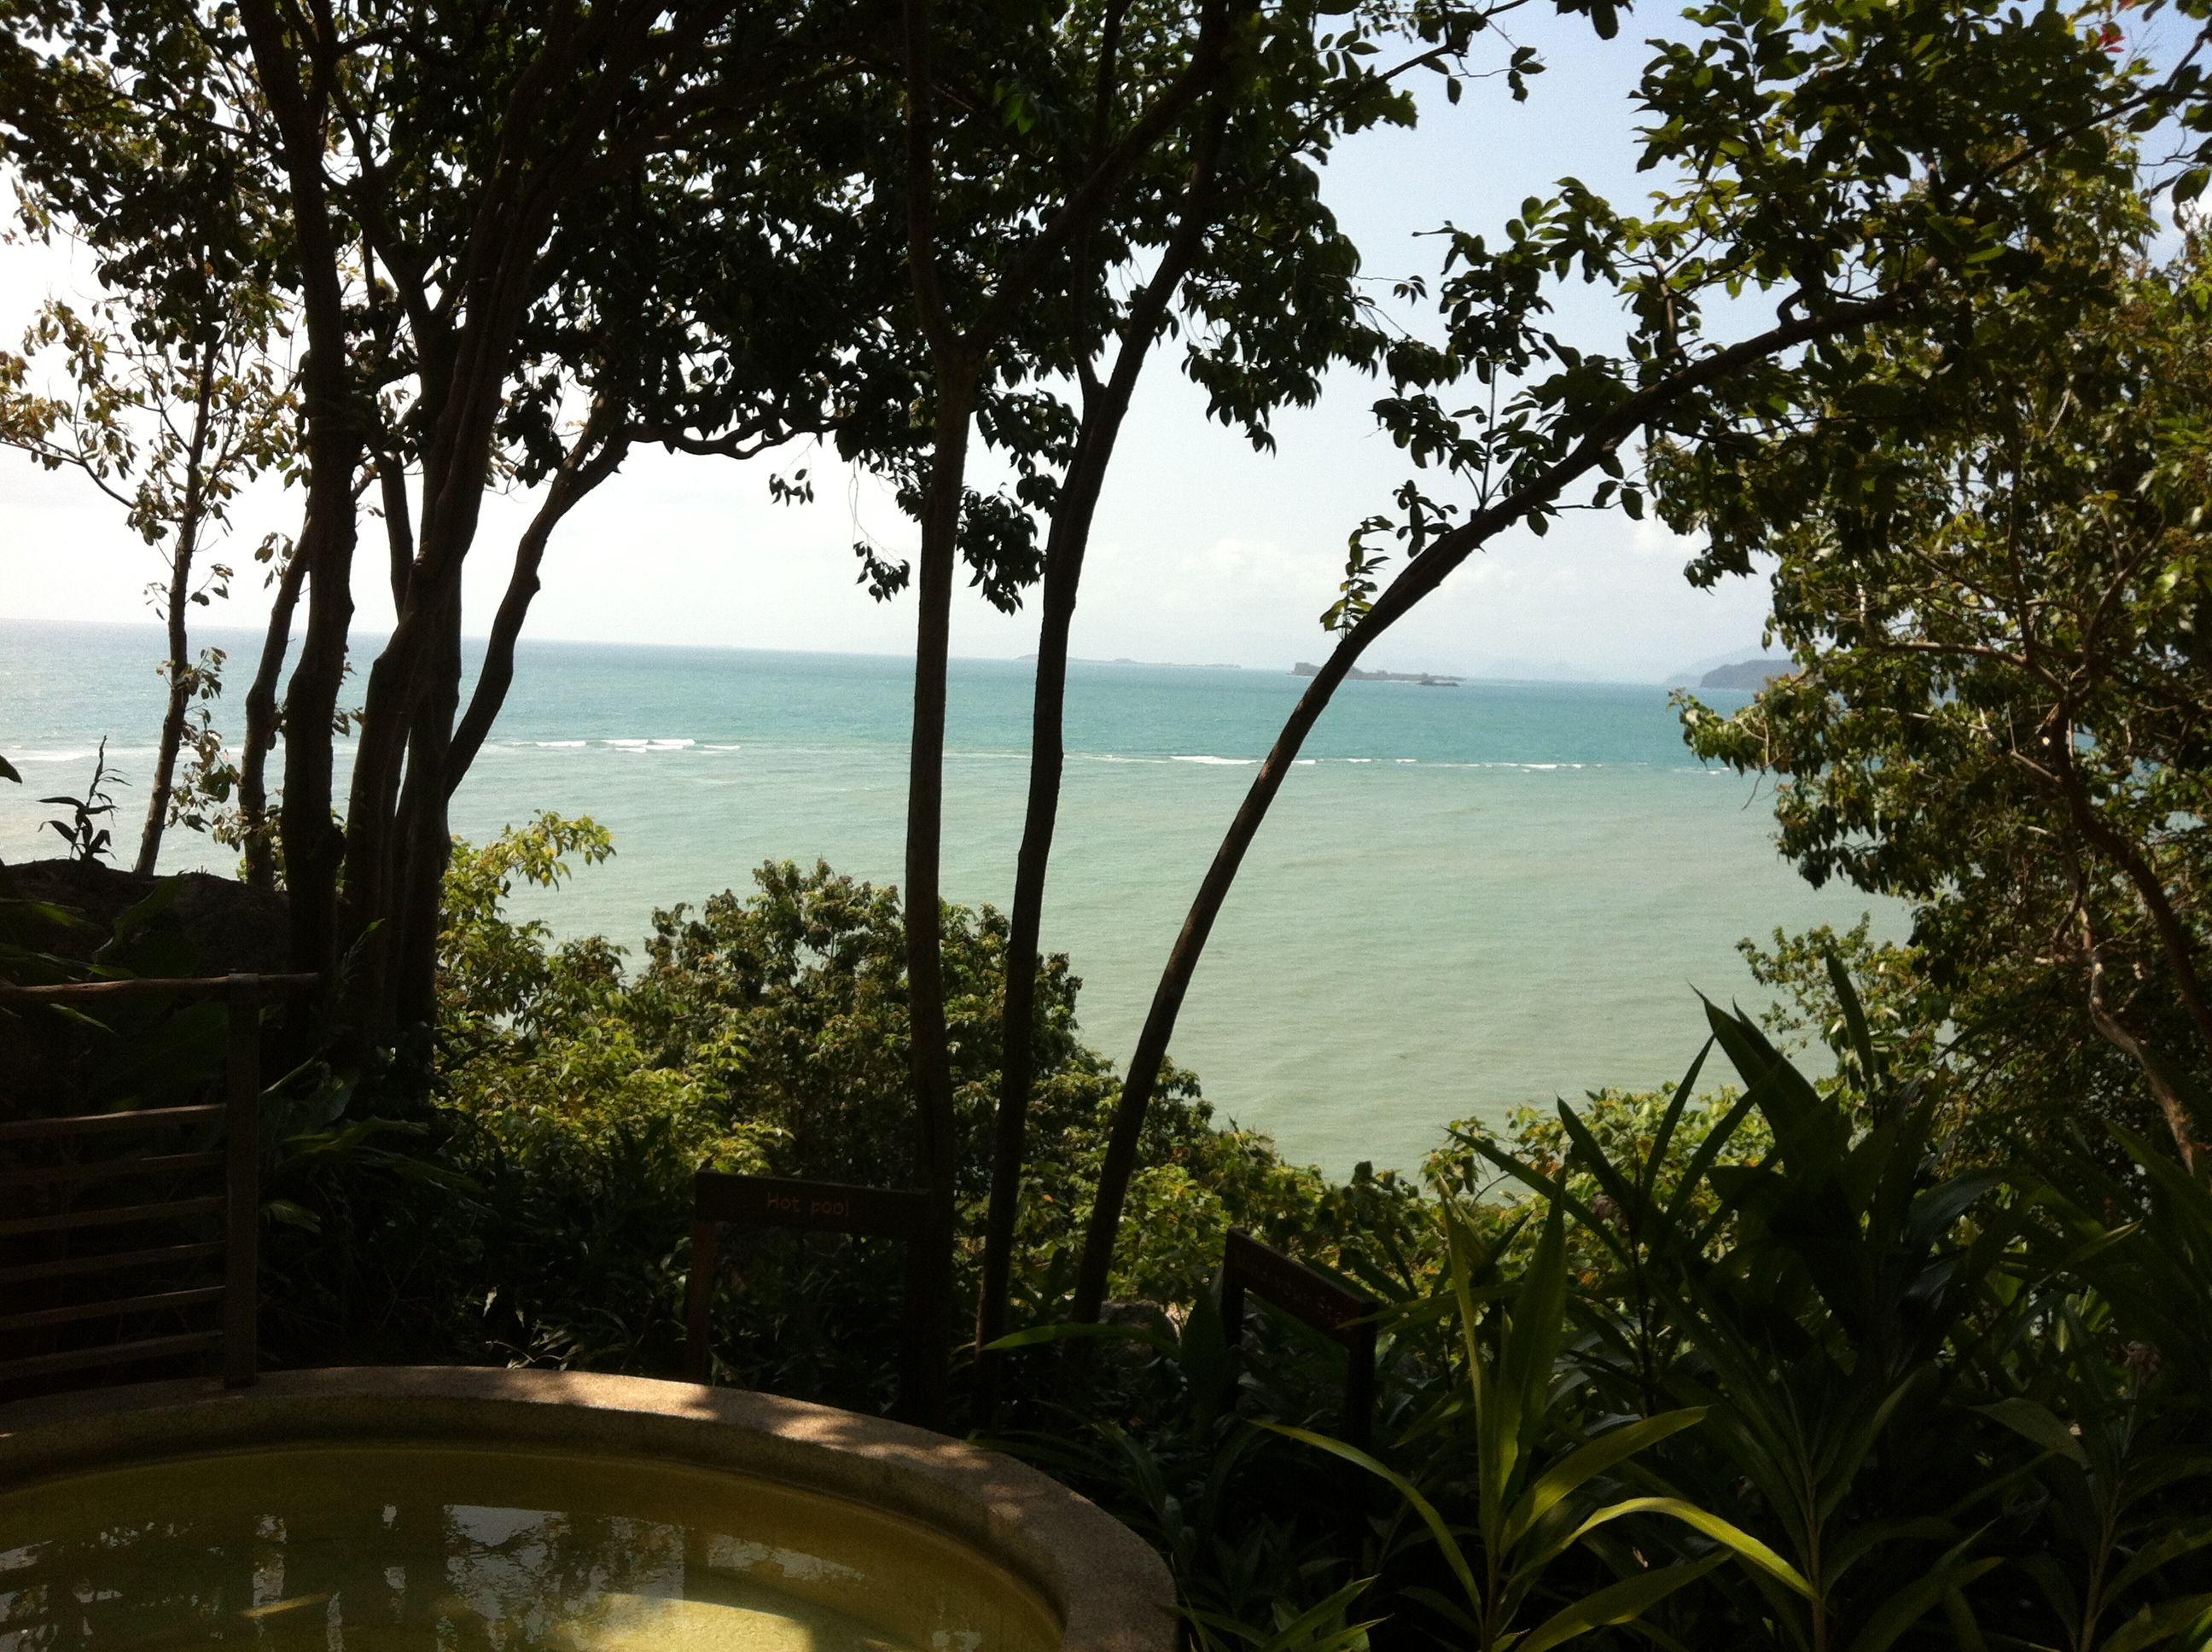 Wellness Plunge Pool View Kamalaya Koh Samui Pinterest Detox - Kamalaya-koh-samui-luxury-spa-resort-in-thailand